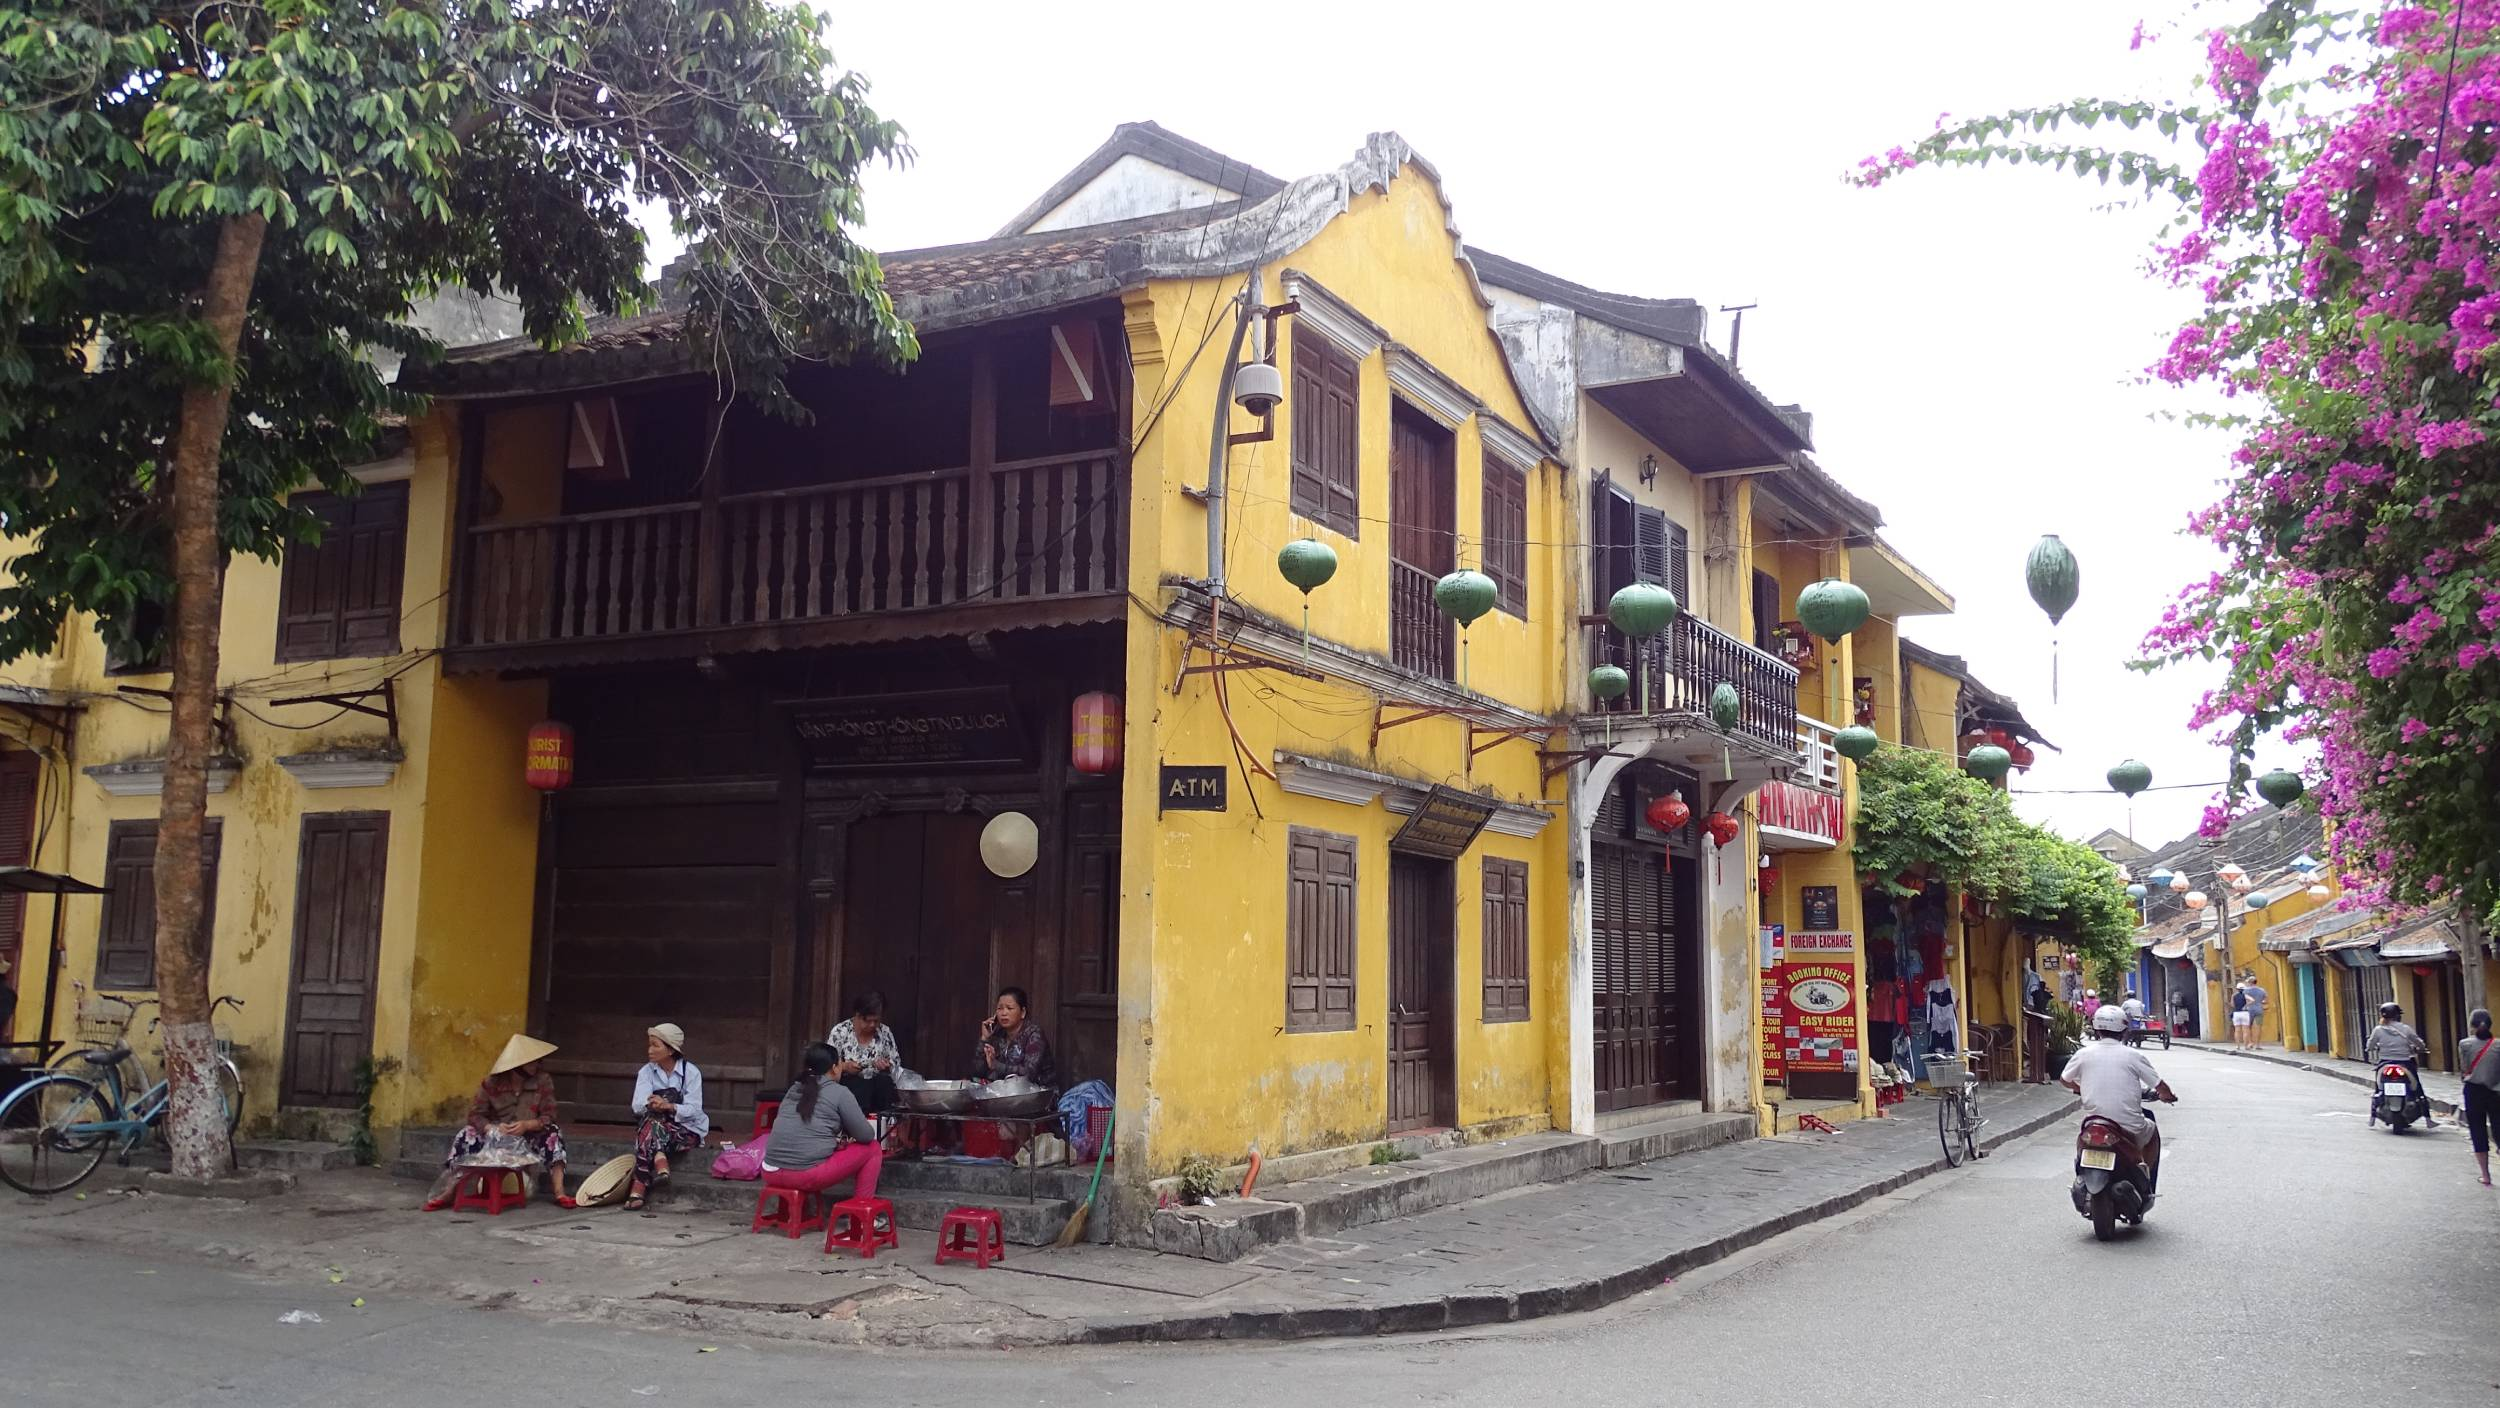 The local women sit on the red low stools in front of a yellow, historical building in  Hoi An  old town